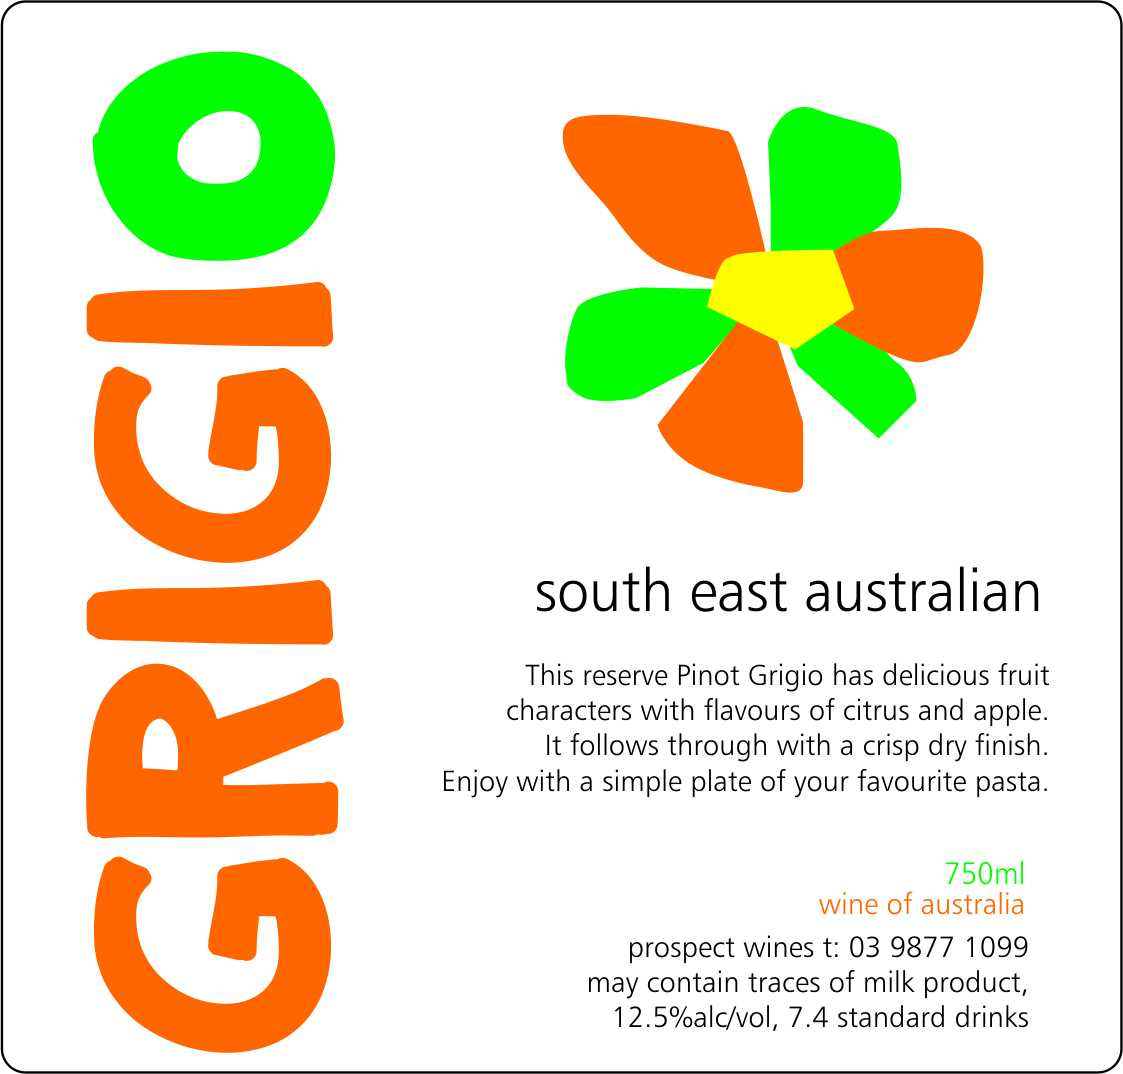 SOUTH EAST AUSTRALIAN PINOT GRIGIO